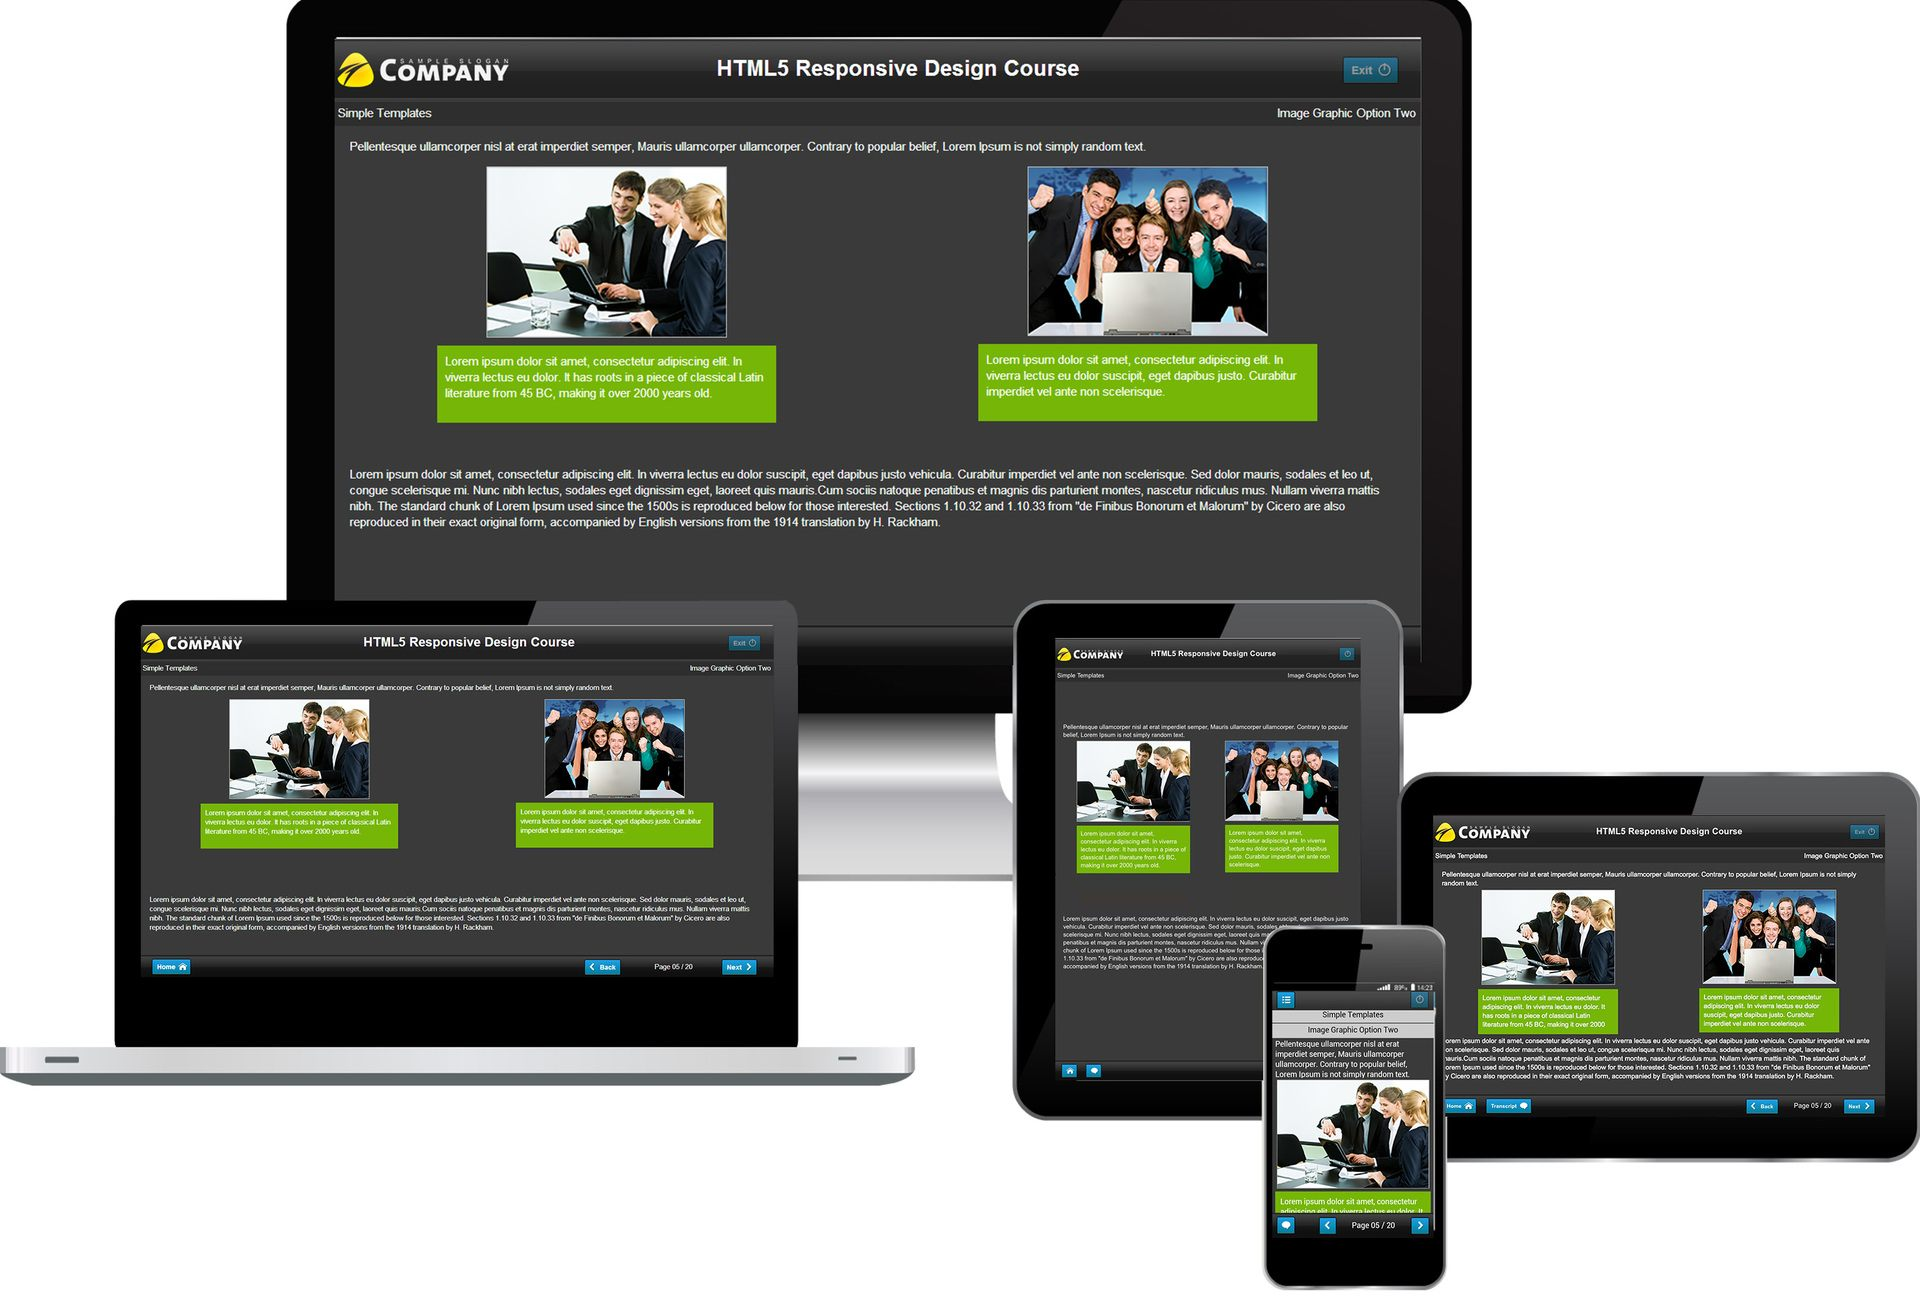 Responsive eLearning Design Are we ready yet